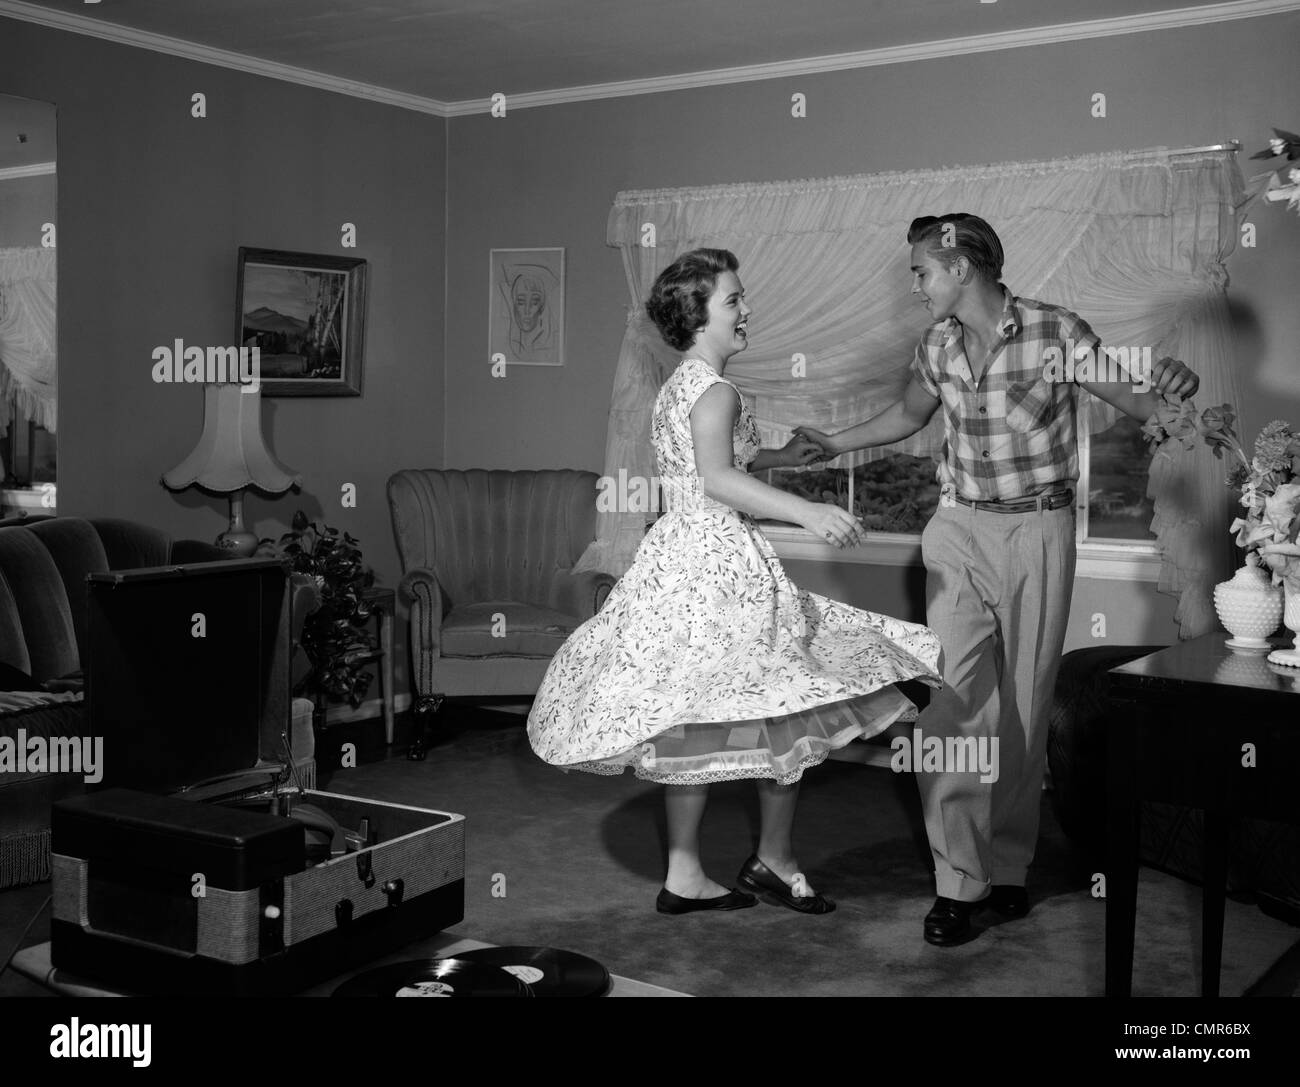 1950s 1960s TEEN COUPLE DANCING JITTERBUG IN LIVING ROOM